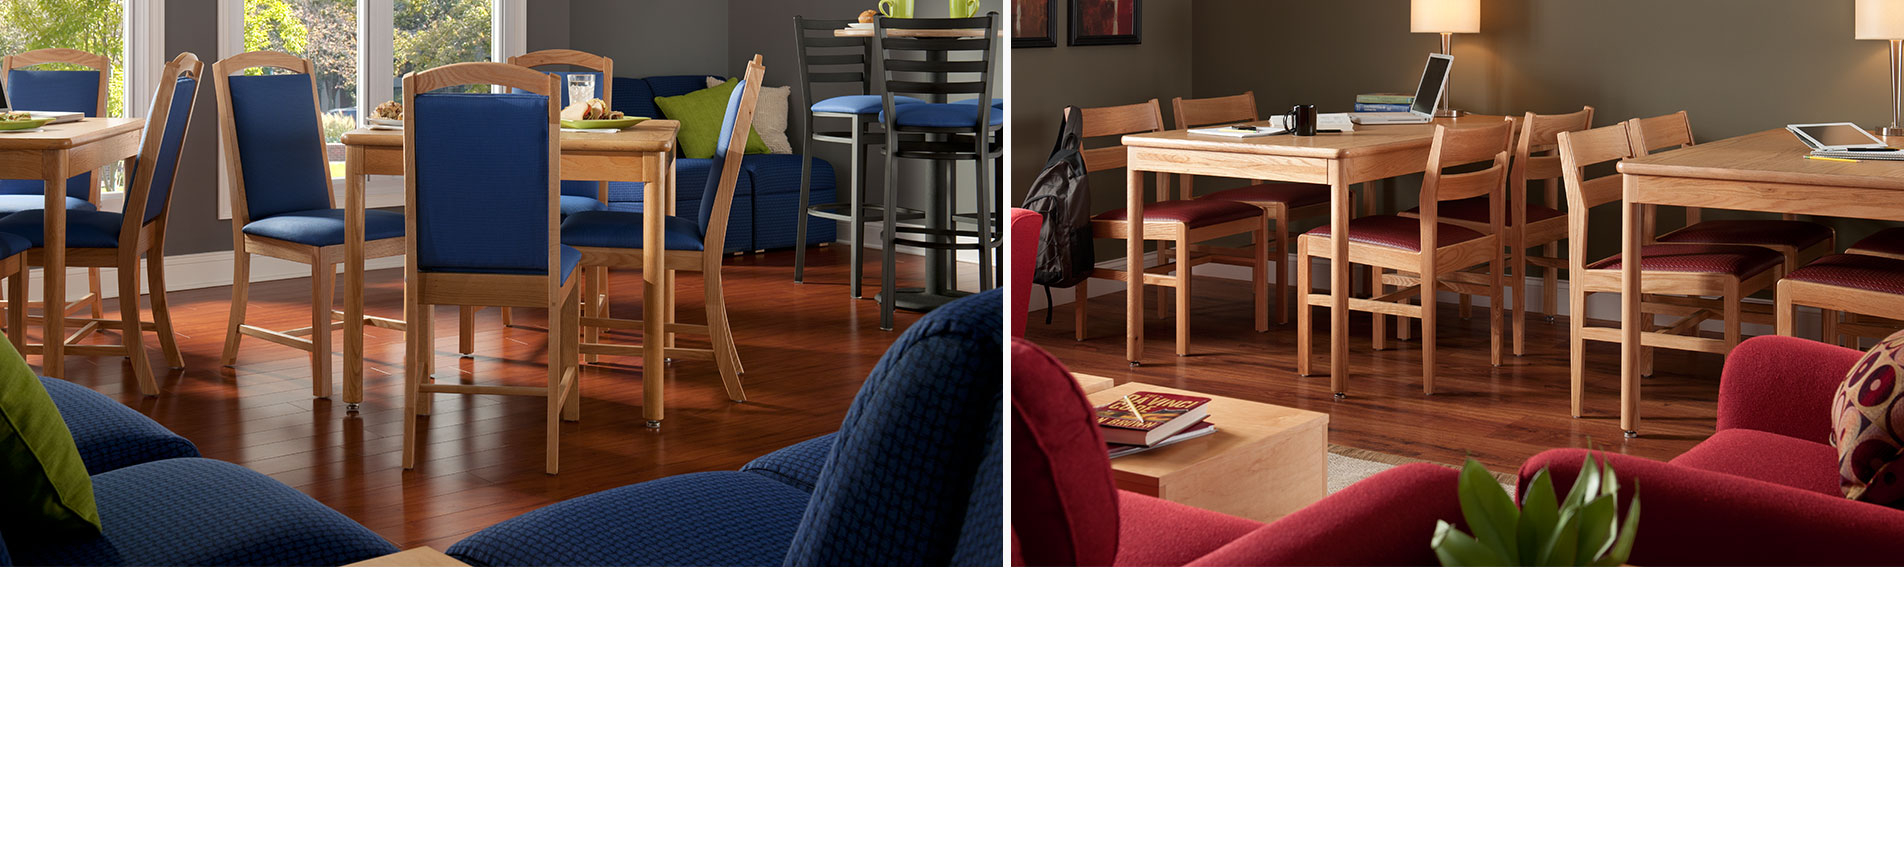 Study Dining Chairs